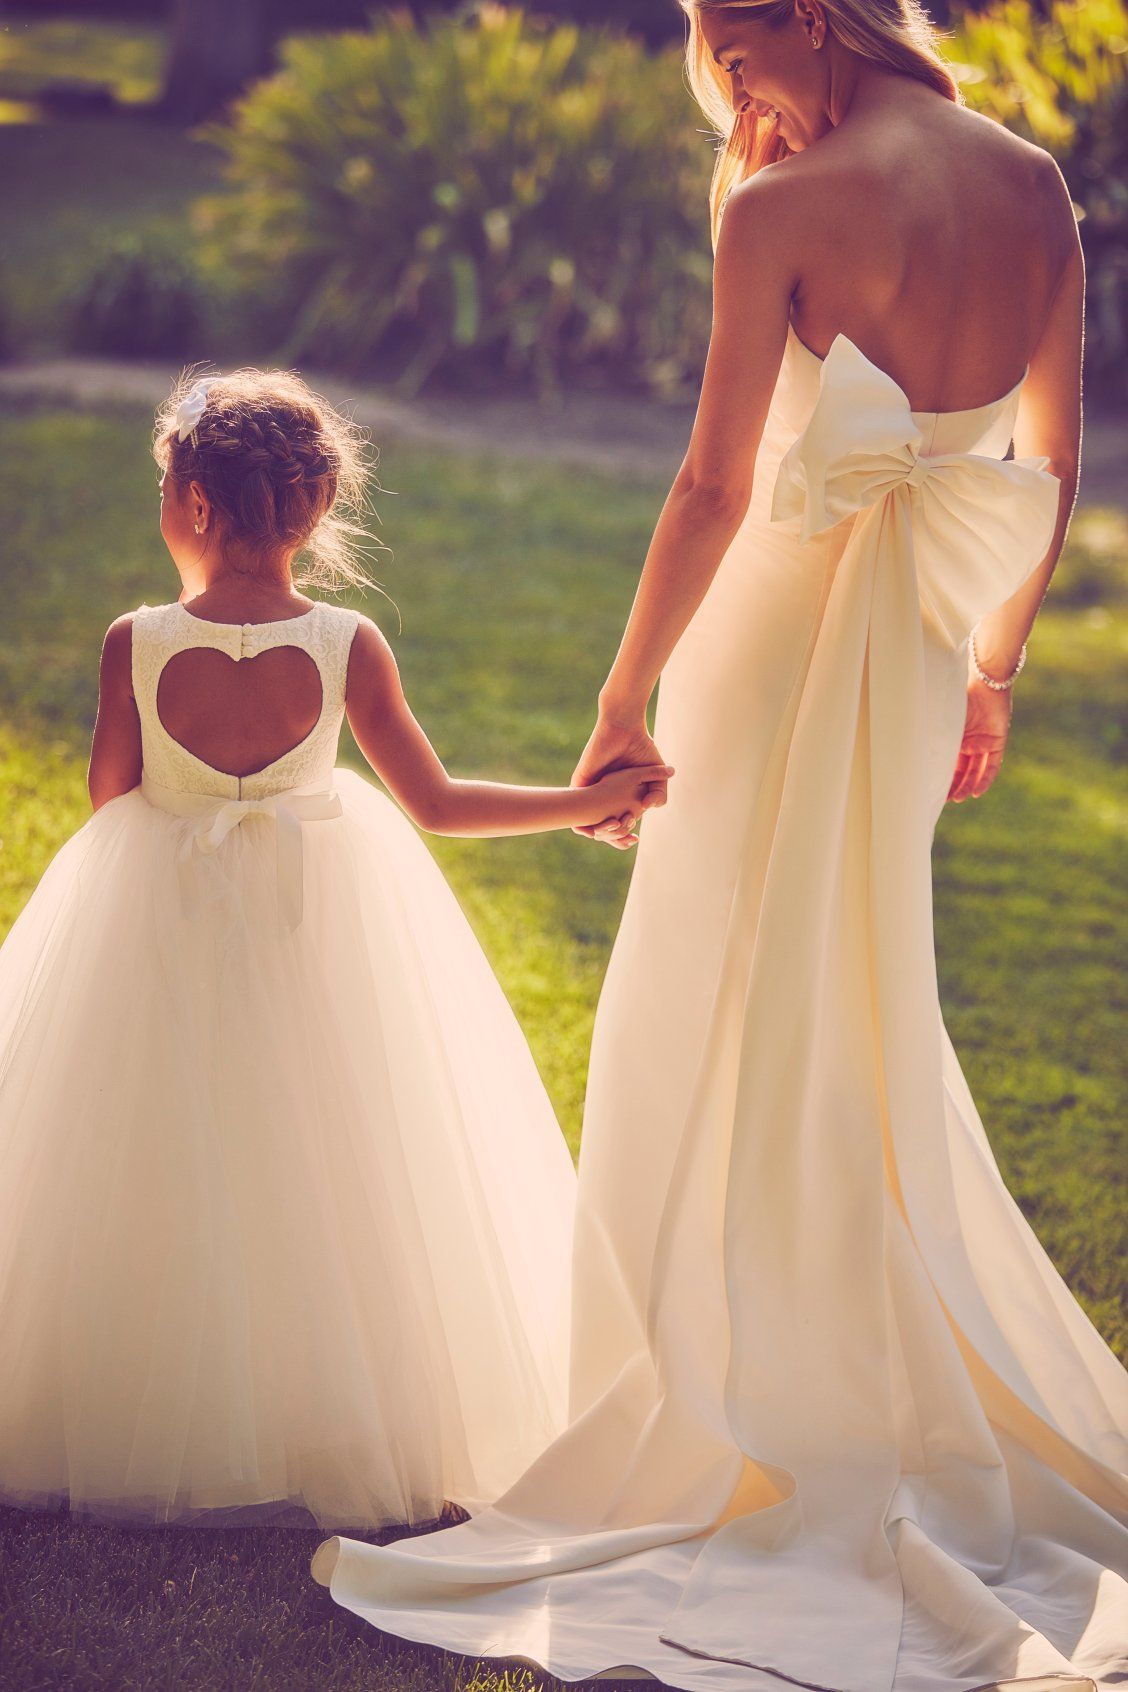 1a11f4308 Unexpected back details from the bride to the flower girl. These ...